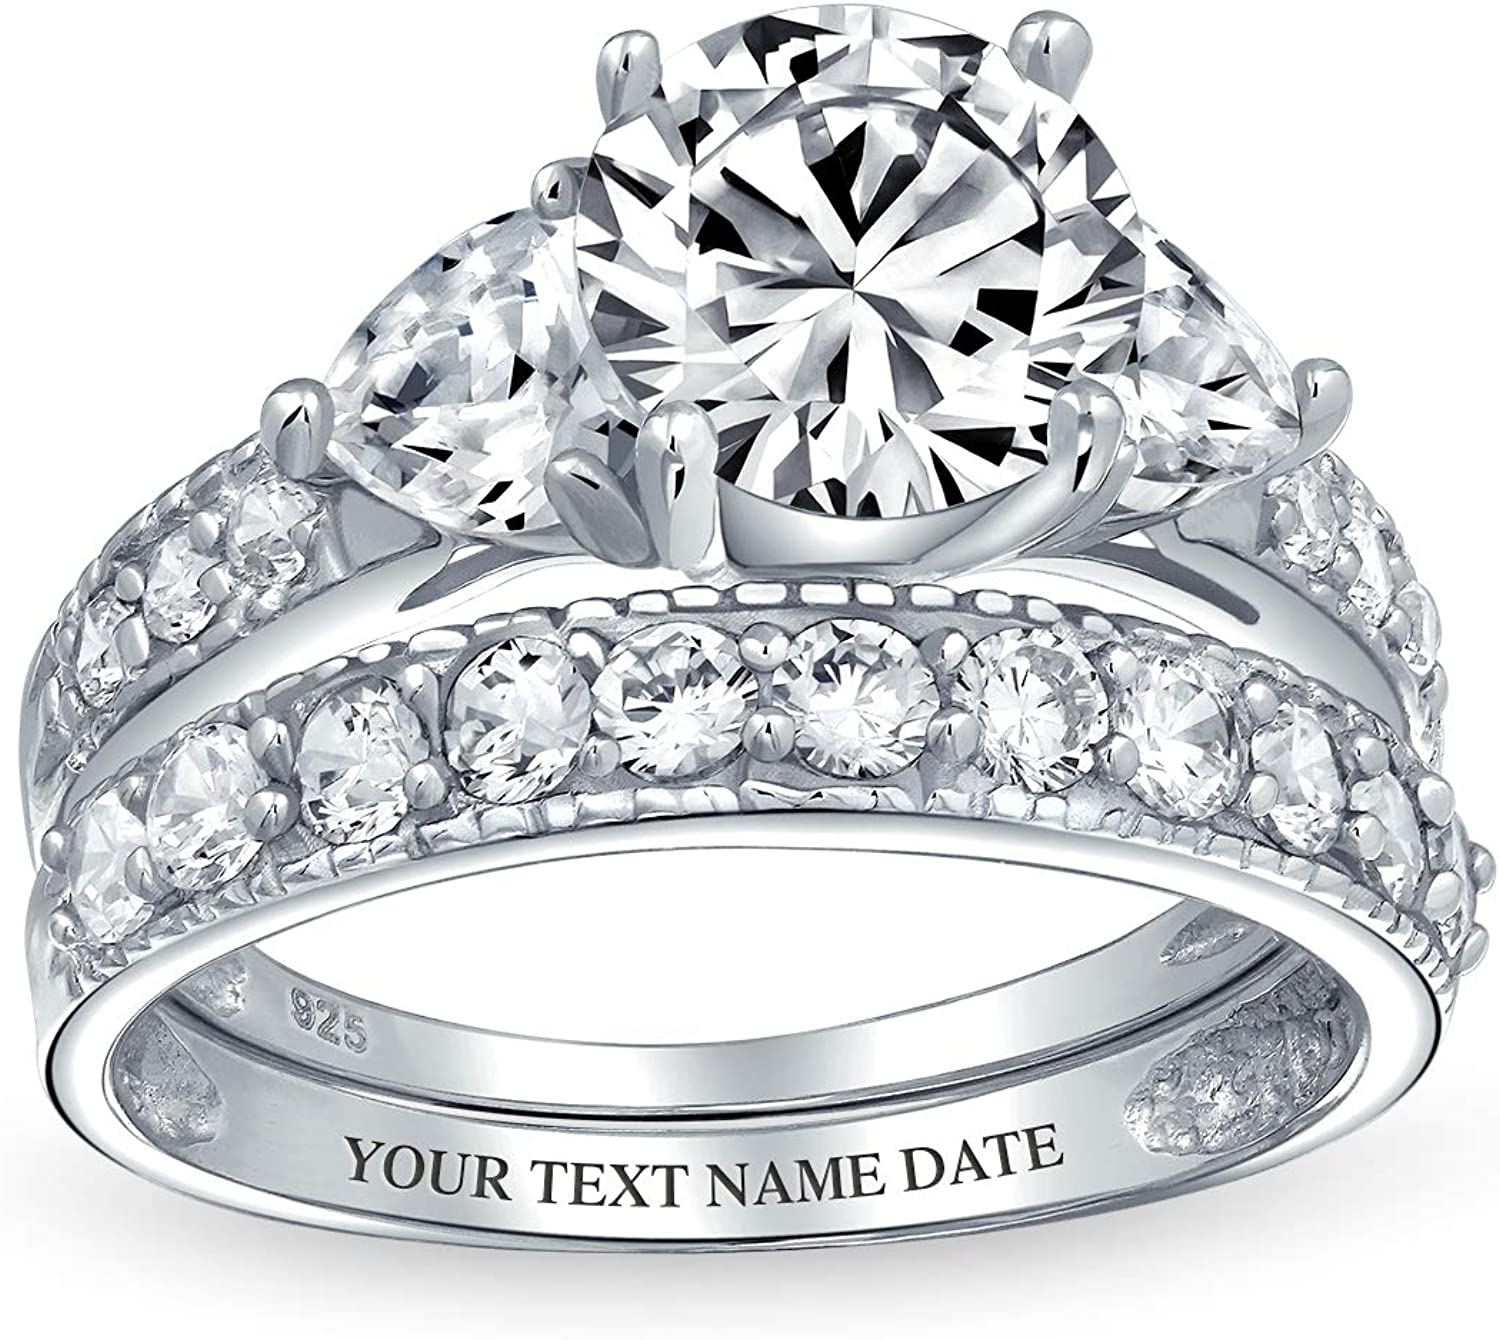 3CT Round Solitaire sale Brilliant Cut Heart Genuine Free Shipping Pave CZ Band AAA Shaped